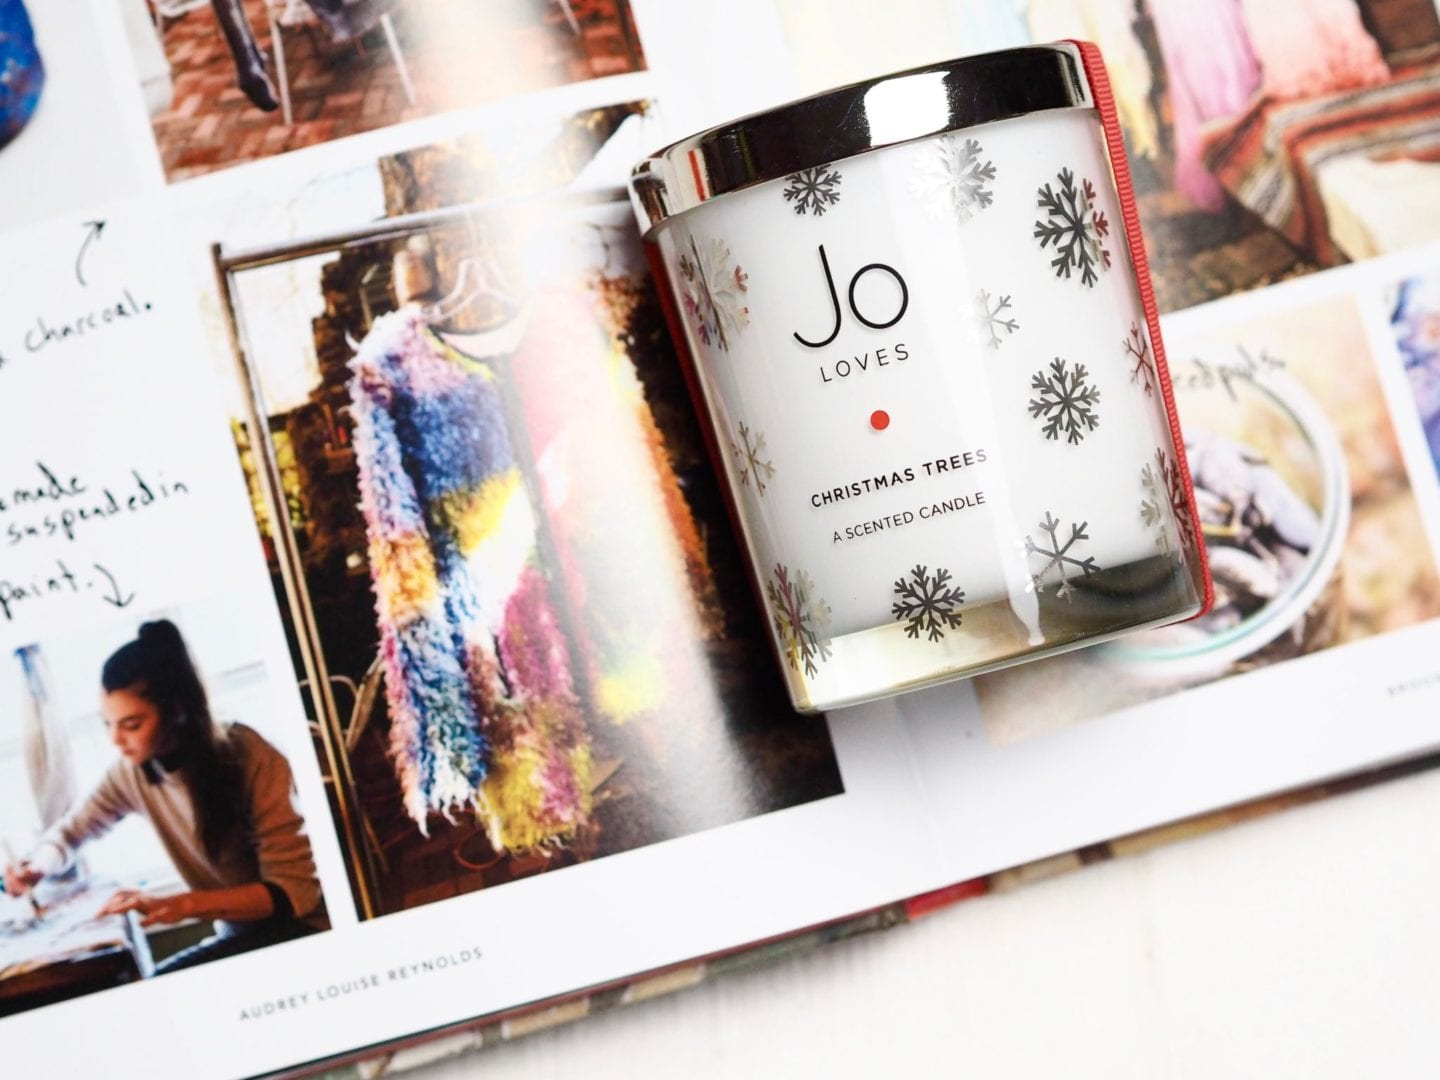 Jo Loves 'Christmas Trees' scented candle